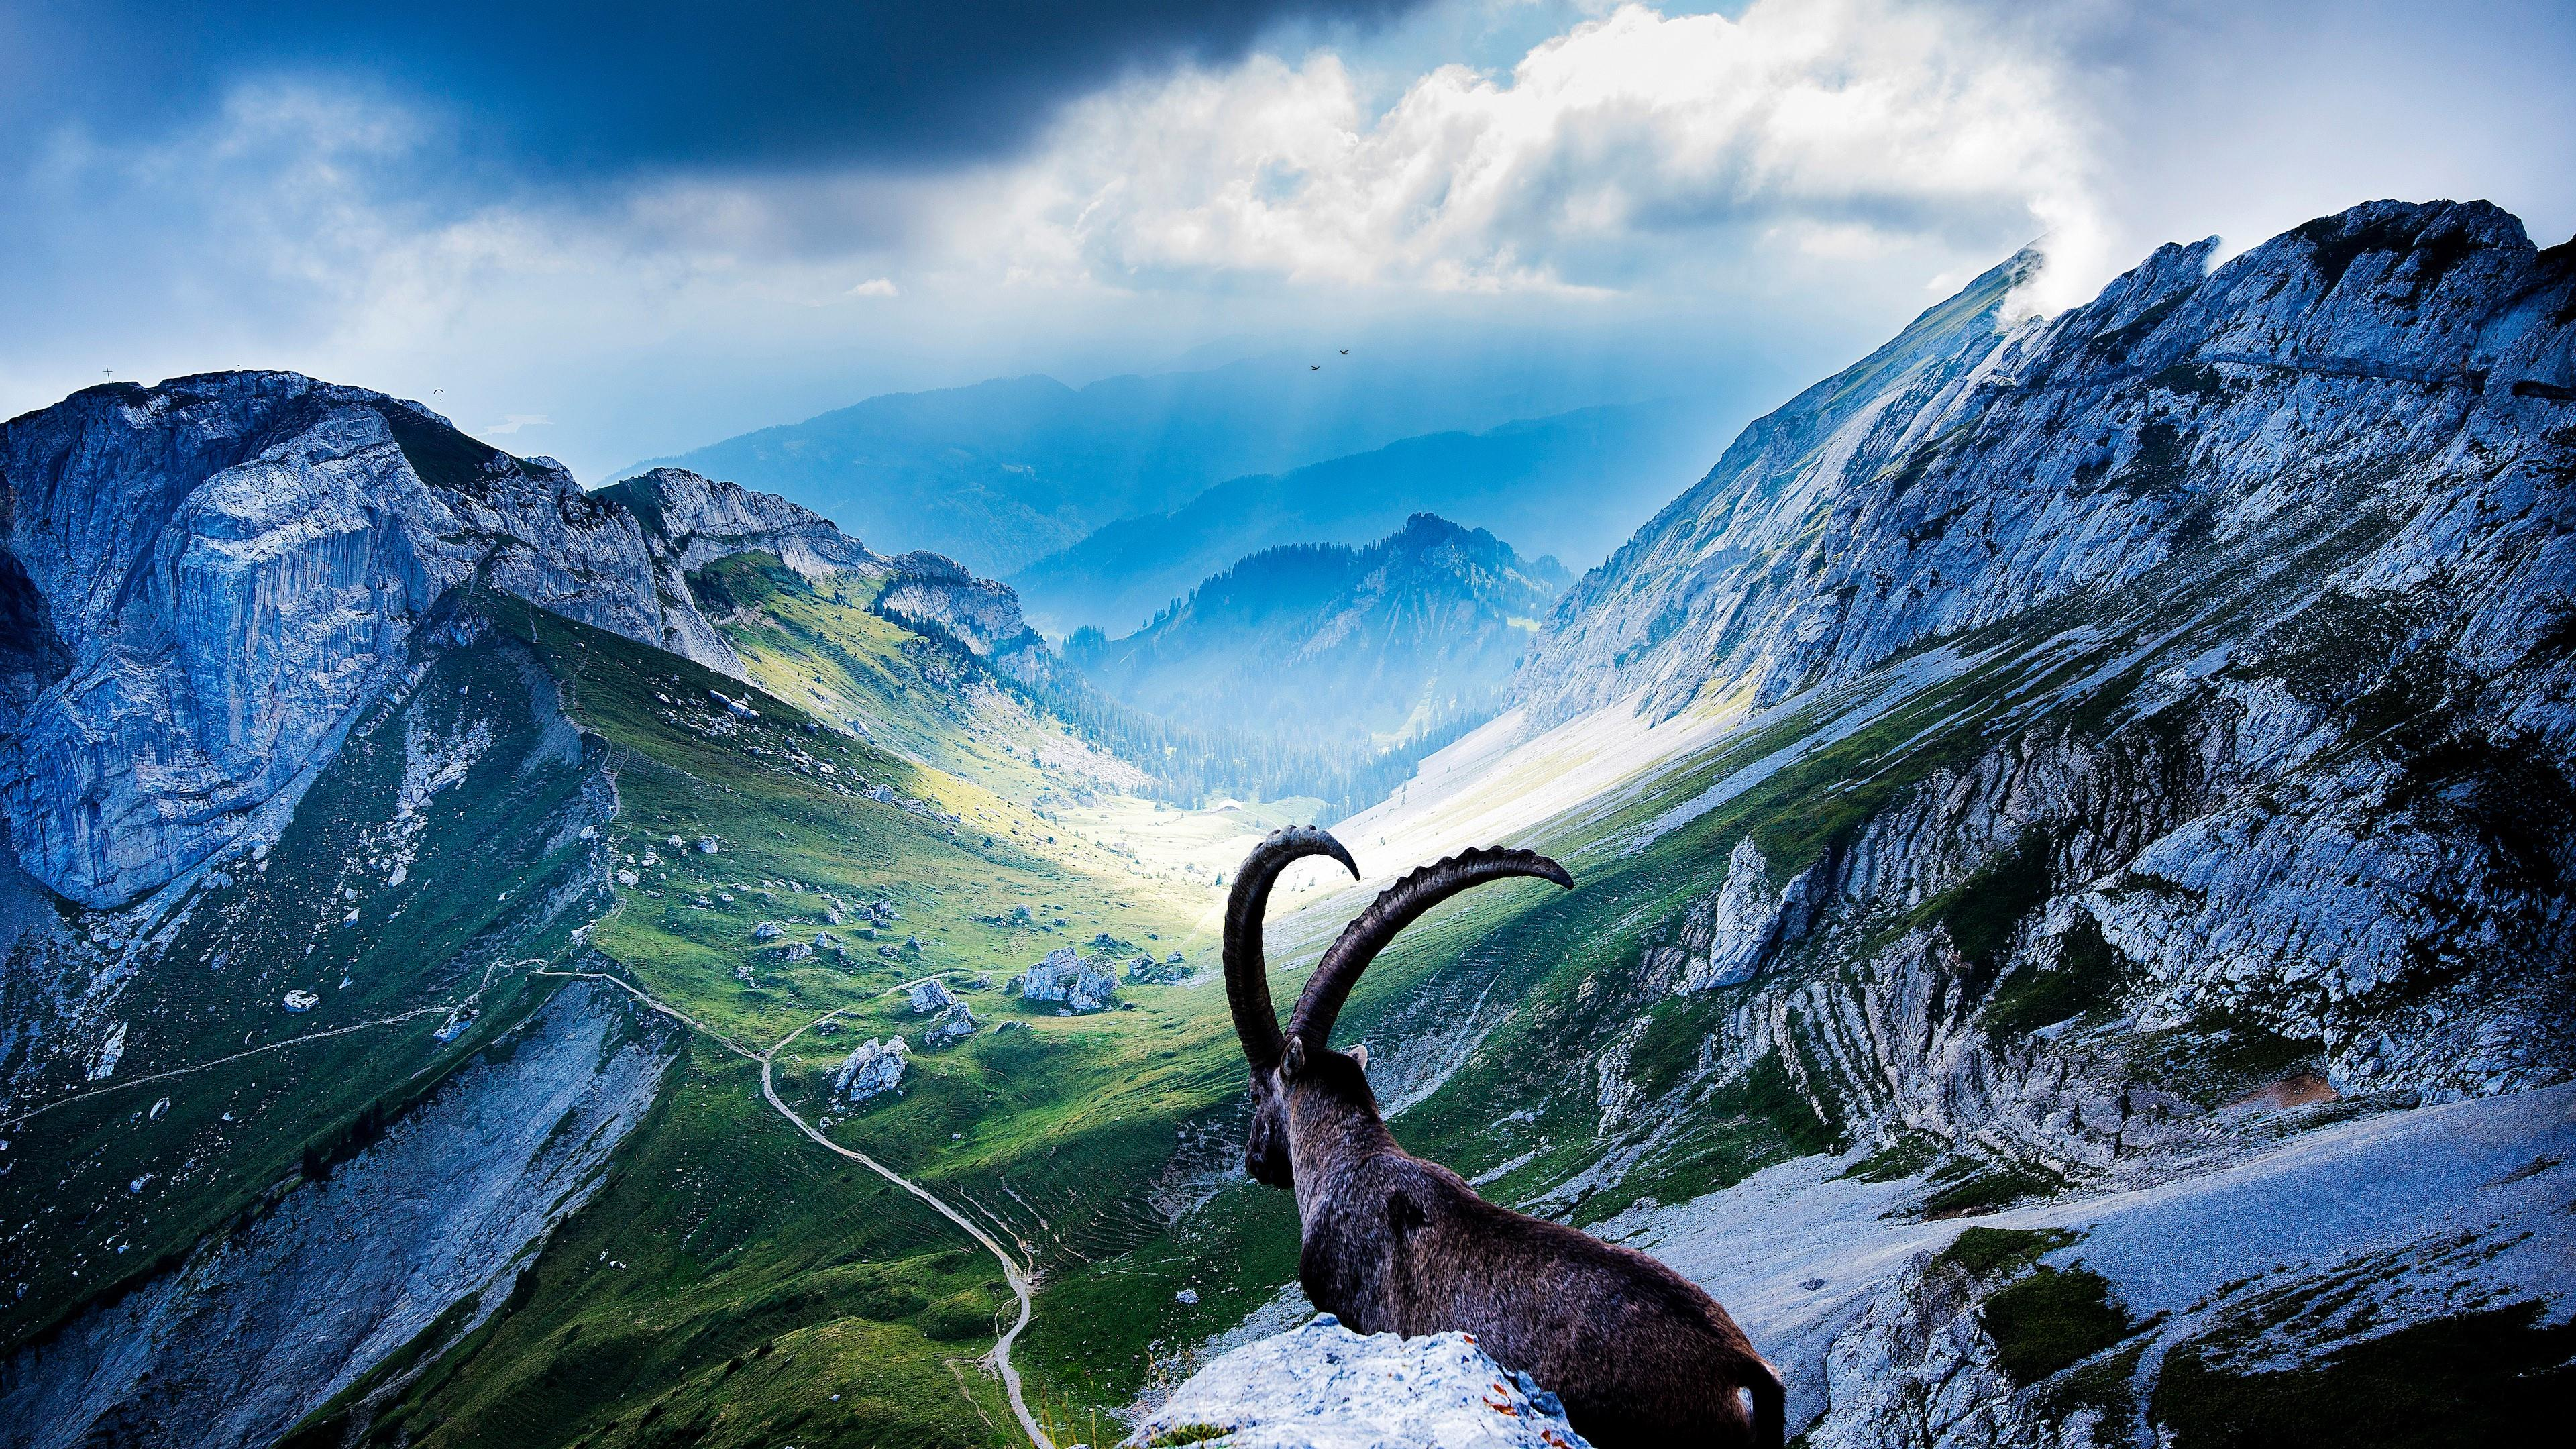 3840x2160 Mount Pilatus - Switzerland Wallpaper | Wallpaper Studio 10 | Tens .